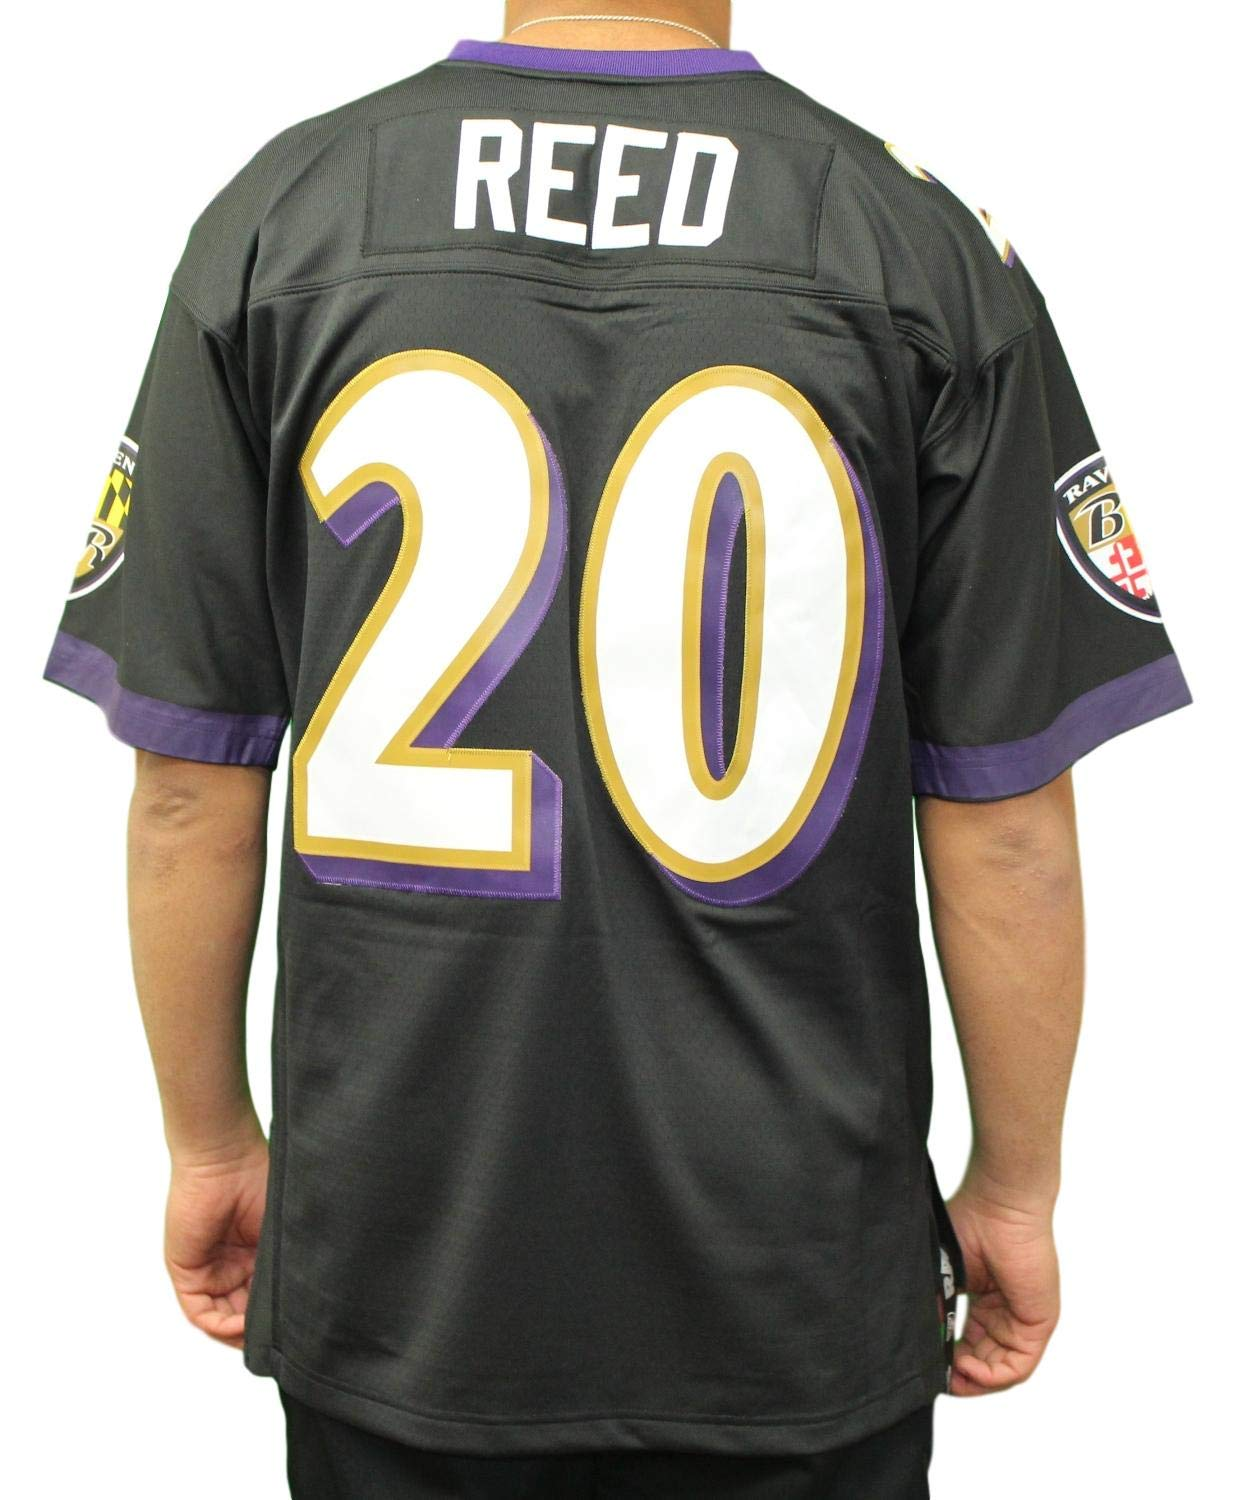 low cost ab1a9 5b6be Amazon.com : Mitchell & Ness Ed Reed Baltimore Ravens NFL ...